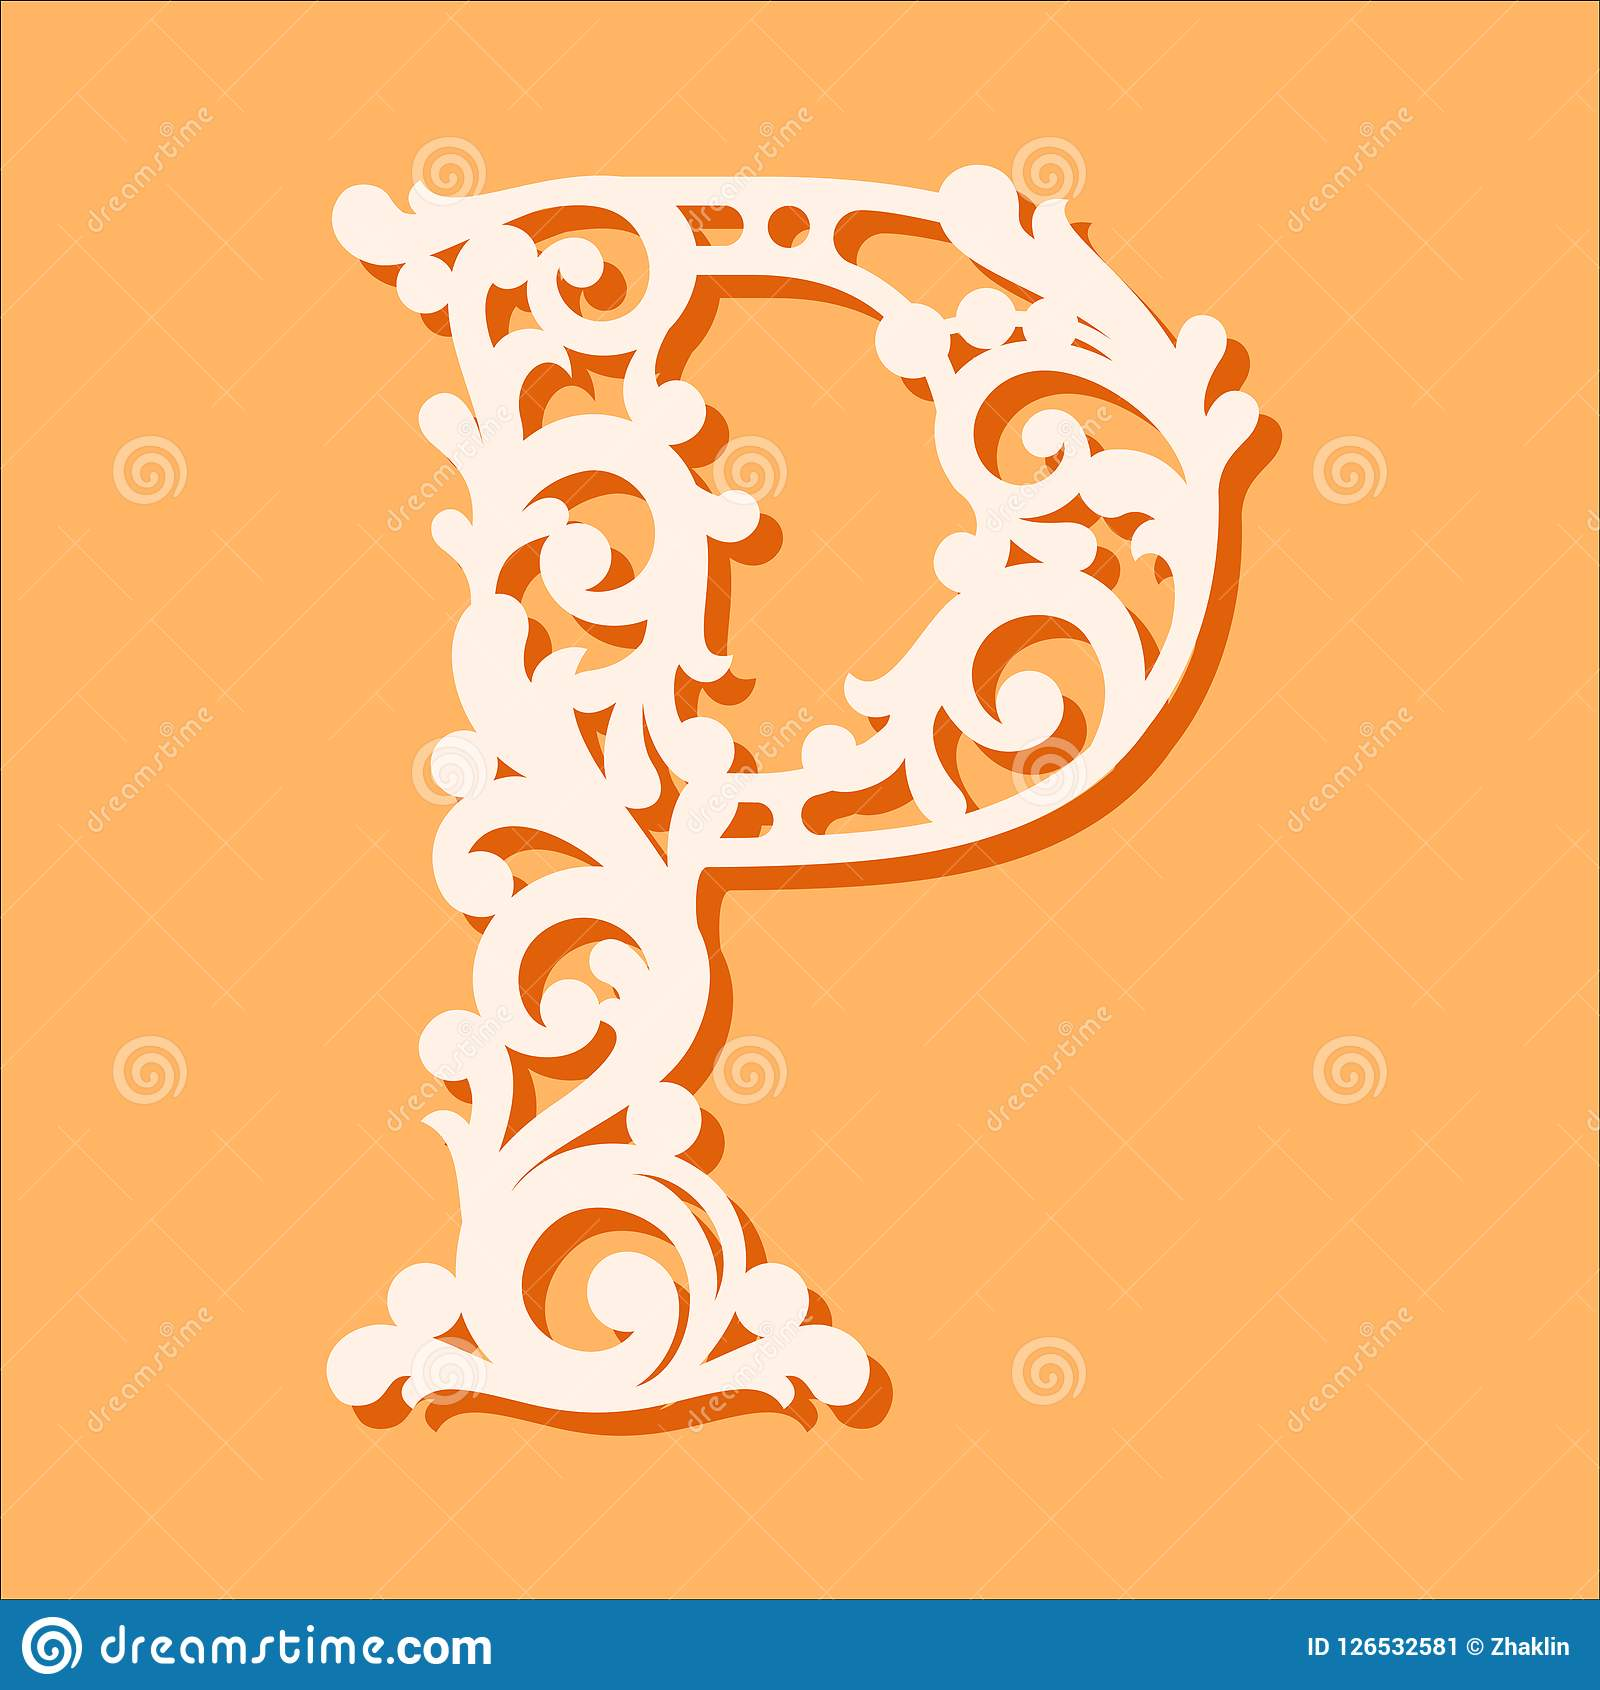 image relating to Printable Fancy Lettering identified as Laser Reduce Template. Very first Monogram Letters. Extravagant Floral